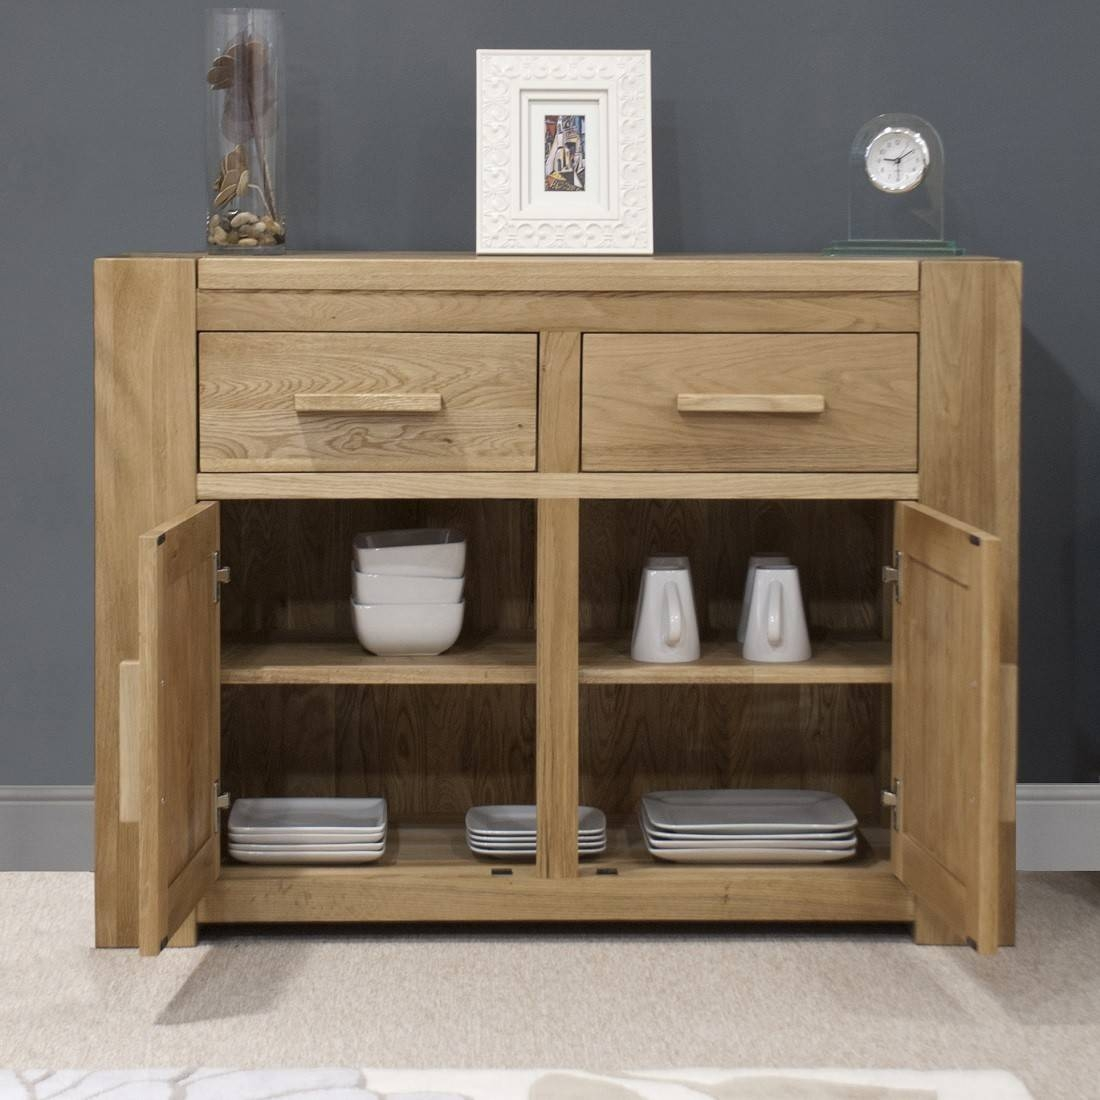 Trend Solid Oak Small 2 Door Sideboard | Oak Furniture Uk regarding Small Wooden Sideboards (Image 29 of 30)